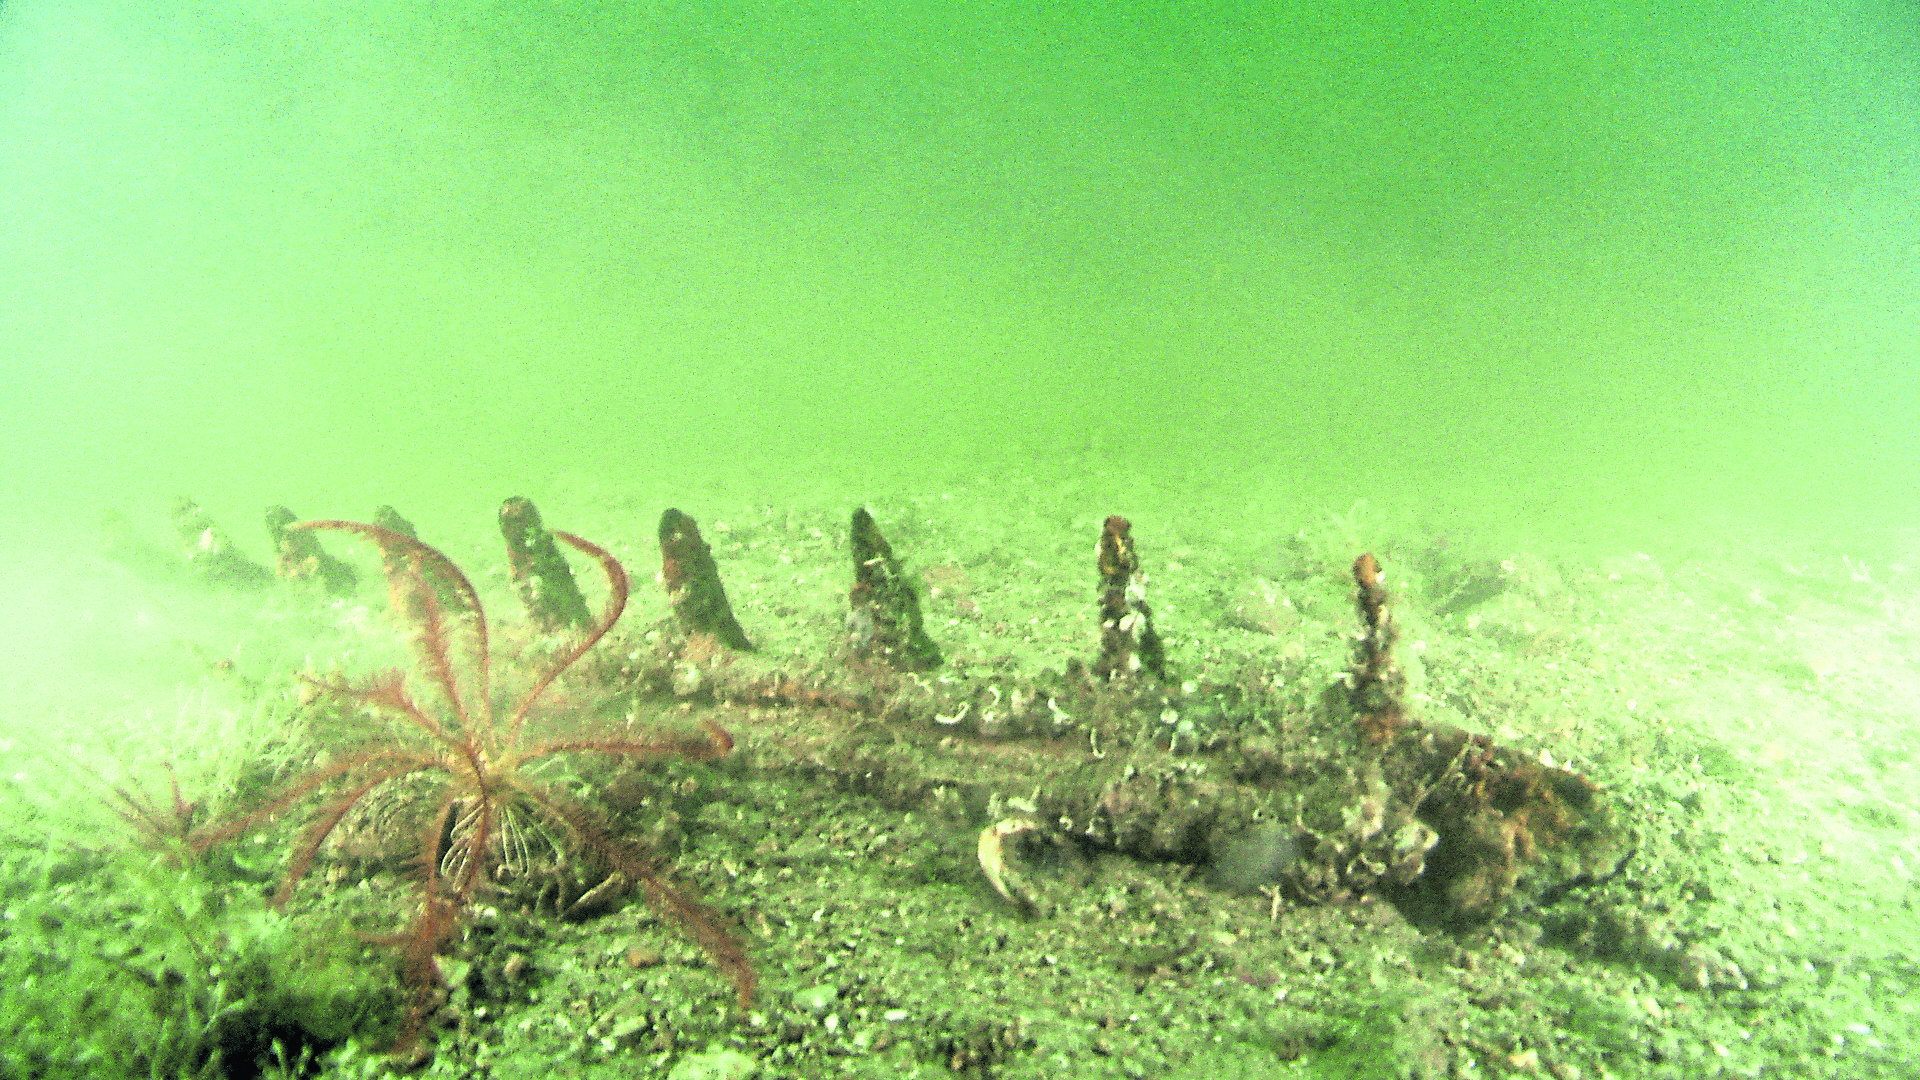 An image of the sea bed in Oban which alleges to show signs of illegal dredging.